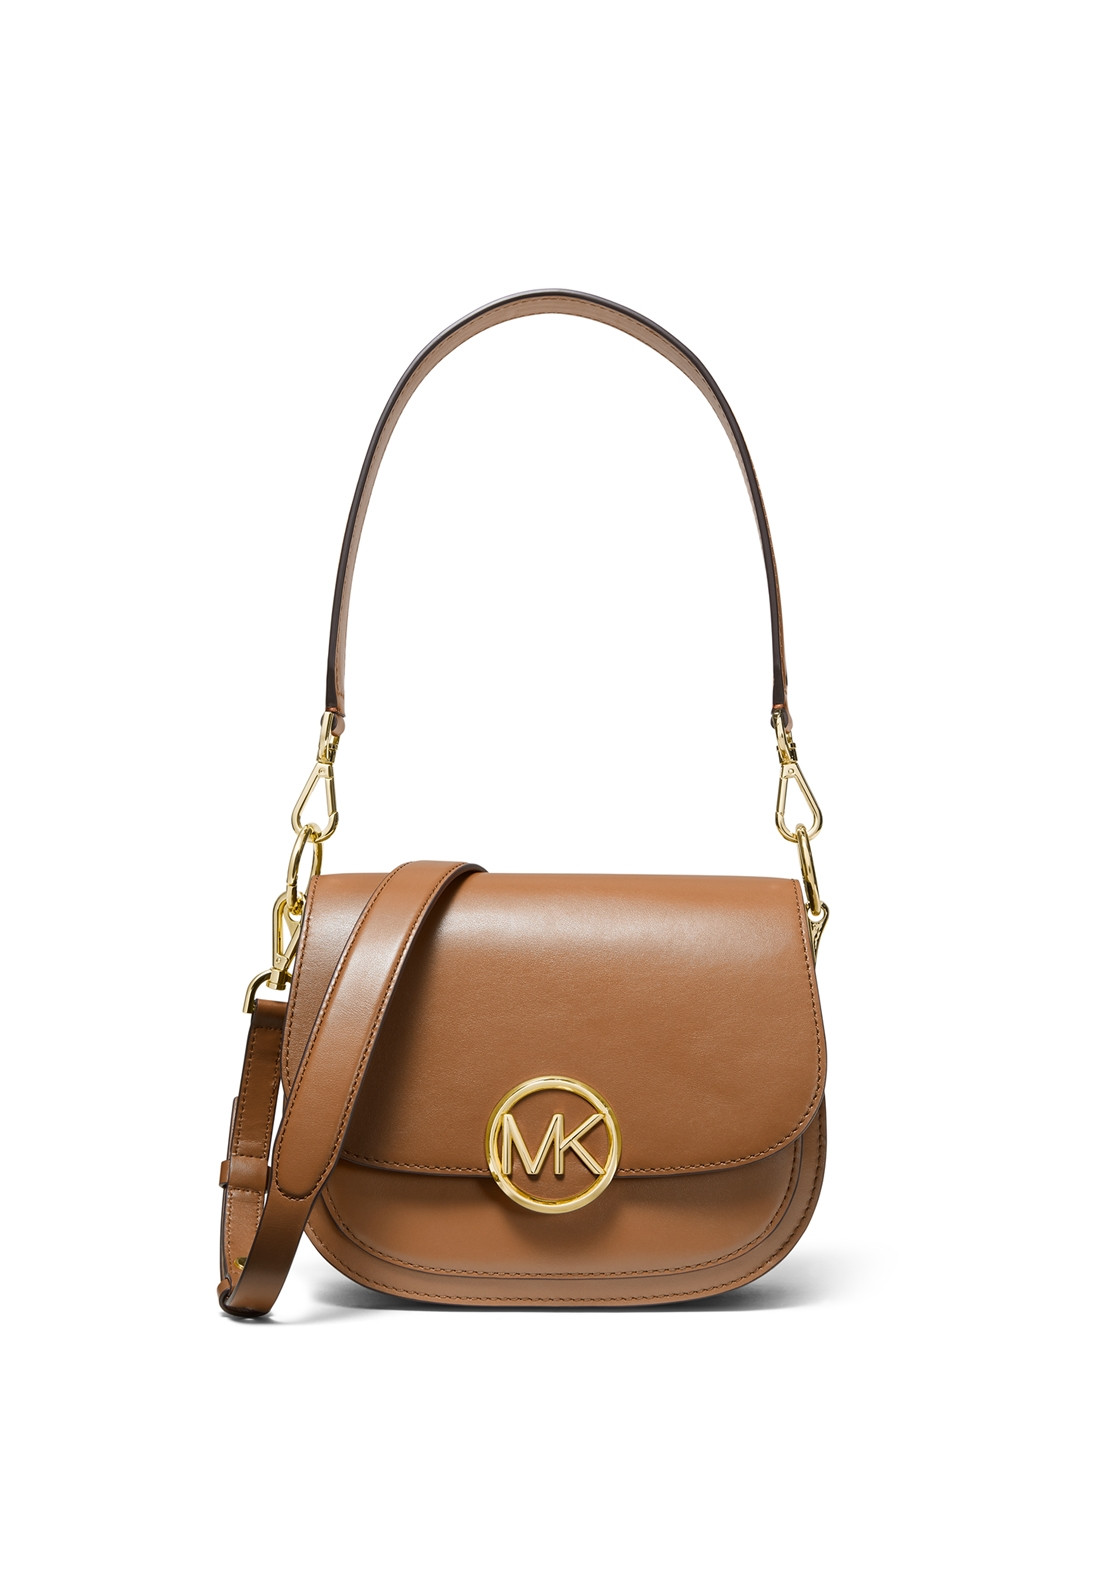 48a40c551896 MICHAEL Michael Kors Lillie Leather Saddle Bag, Acorn. Be the first to  review this product